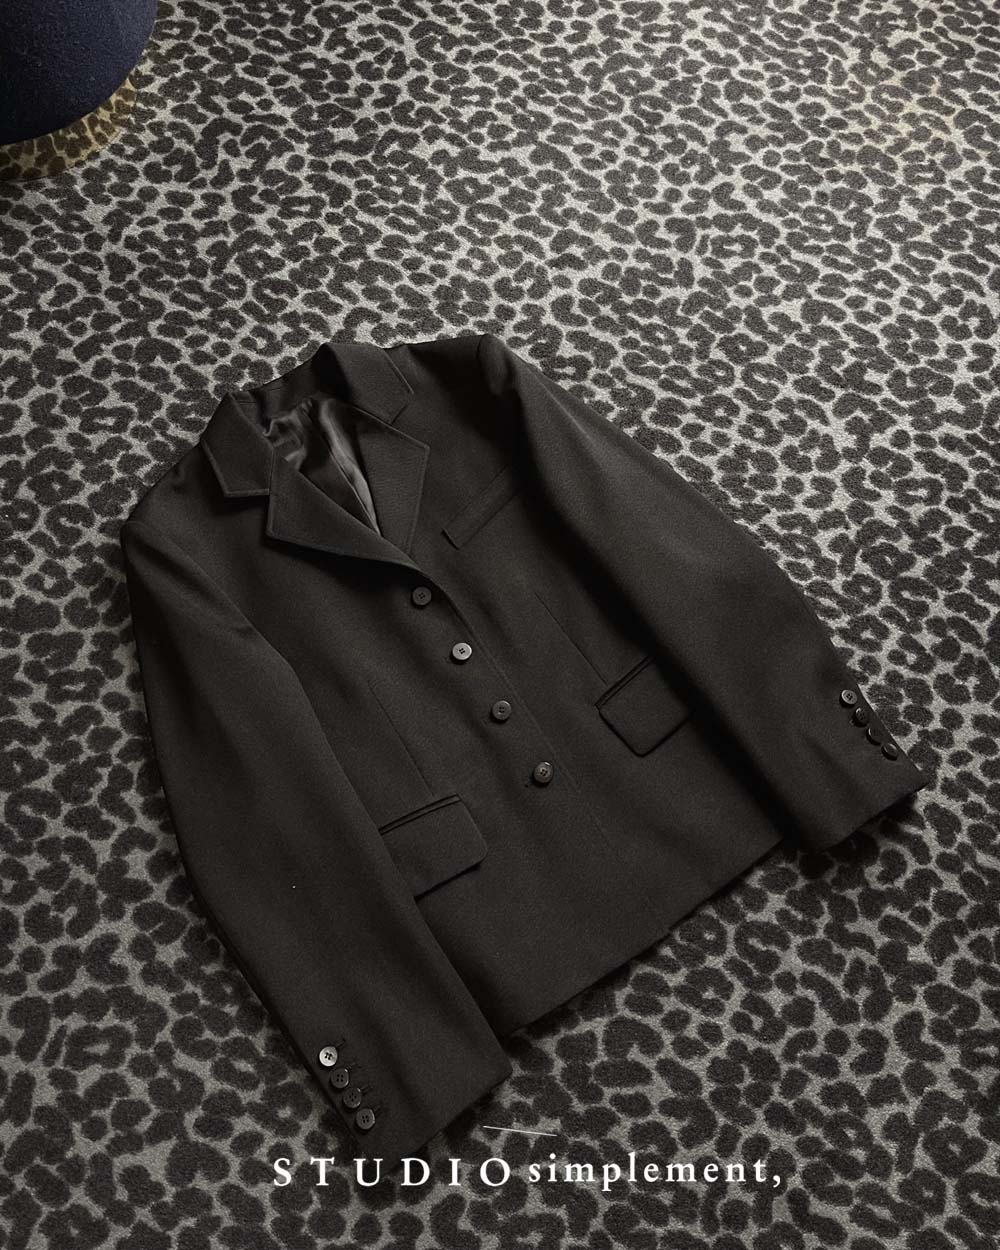 181 Carolyn Jacket in Black